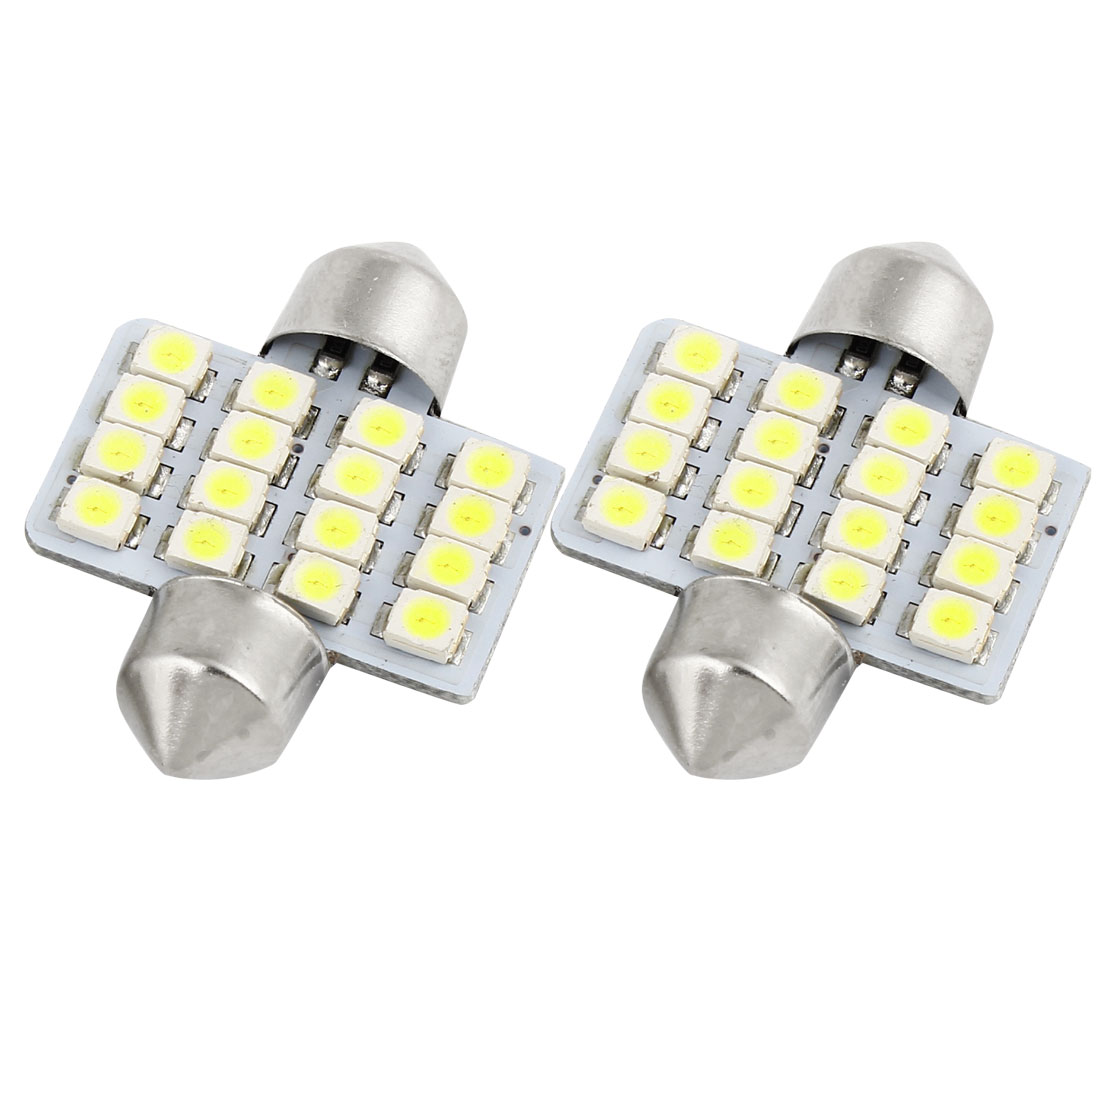 Unique Bargains Bright White 16 SMD LED Car Interior Festoon Dome Light Bulbs 31mm x 2